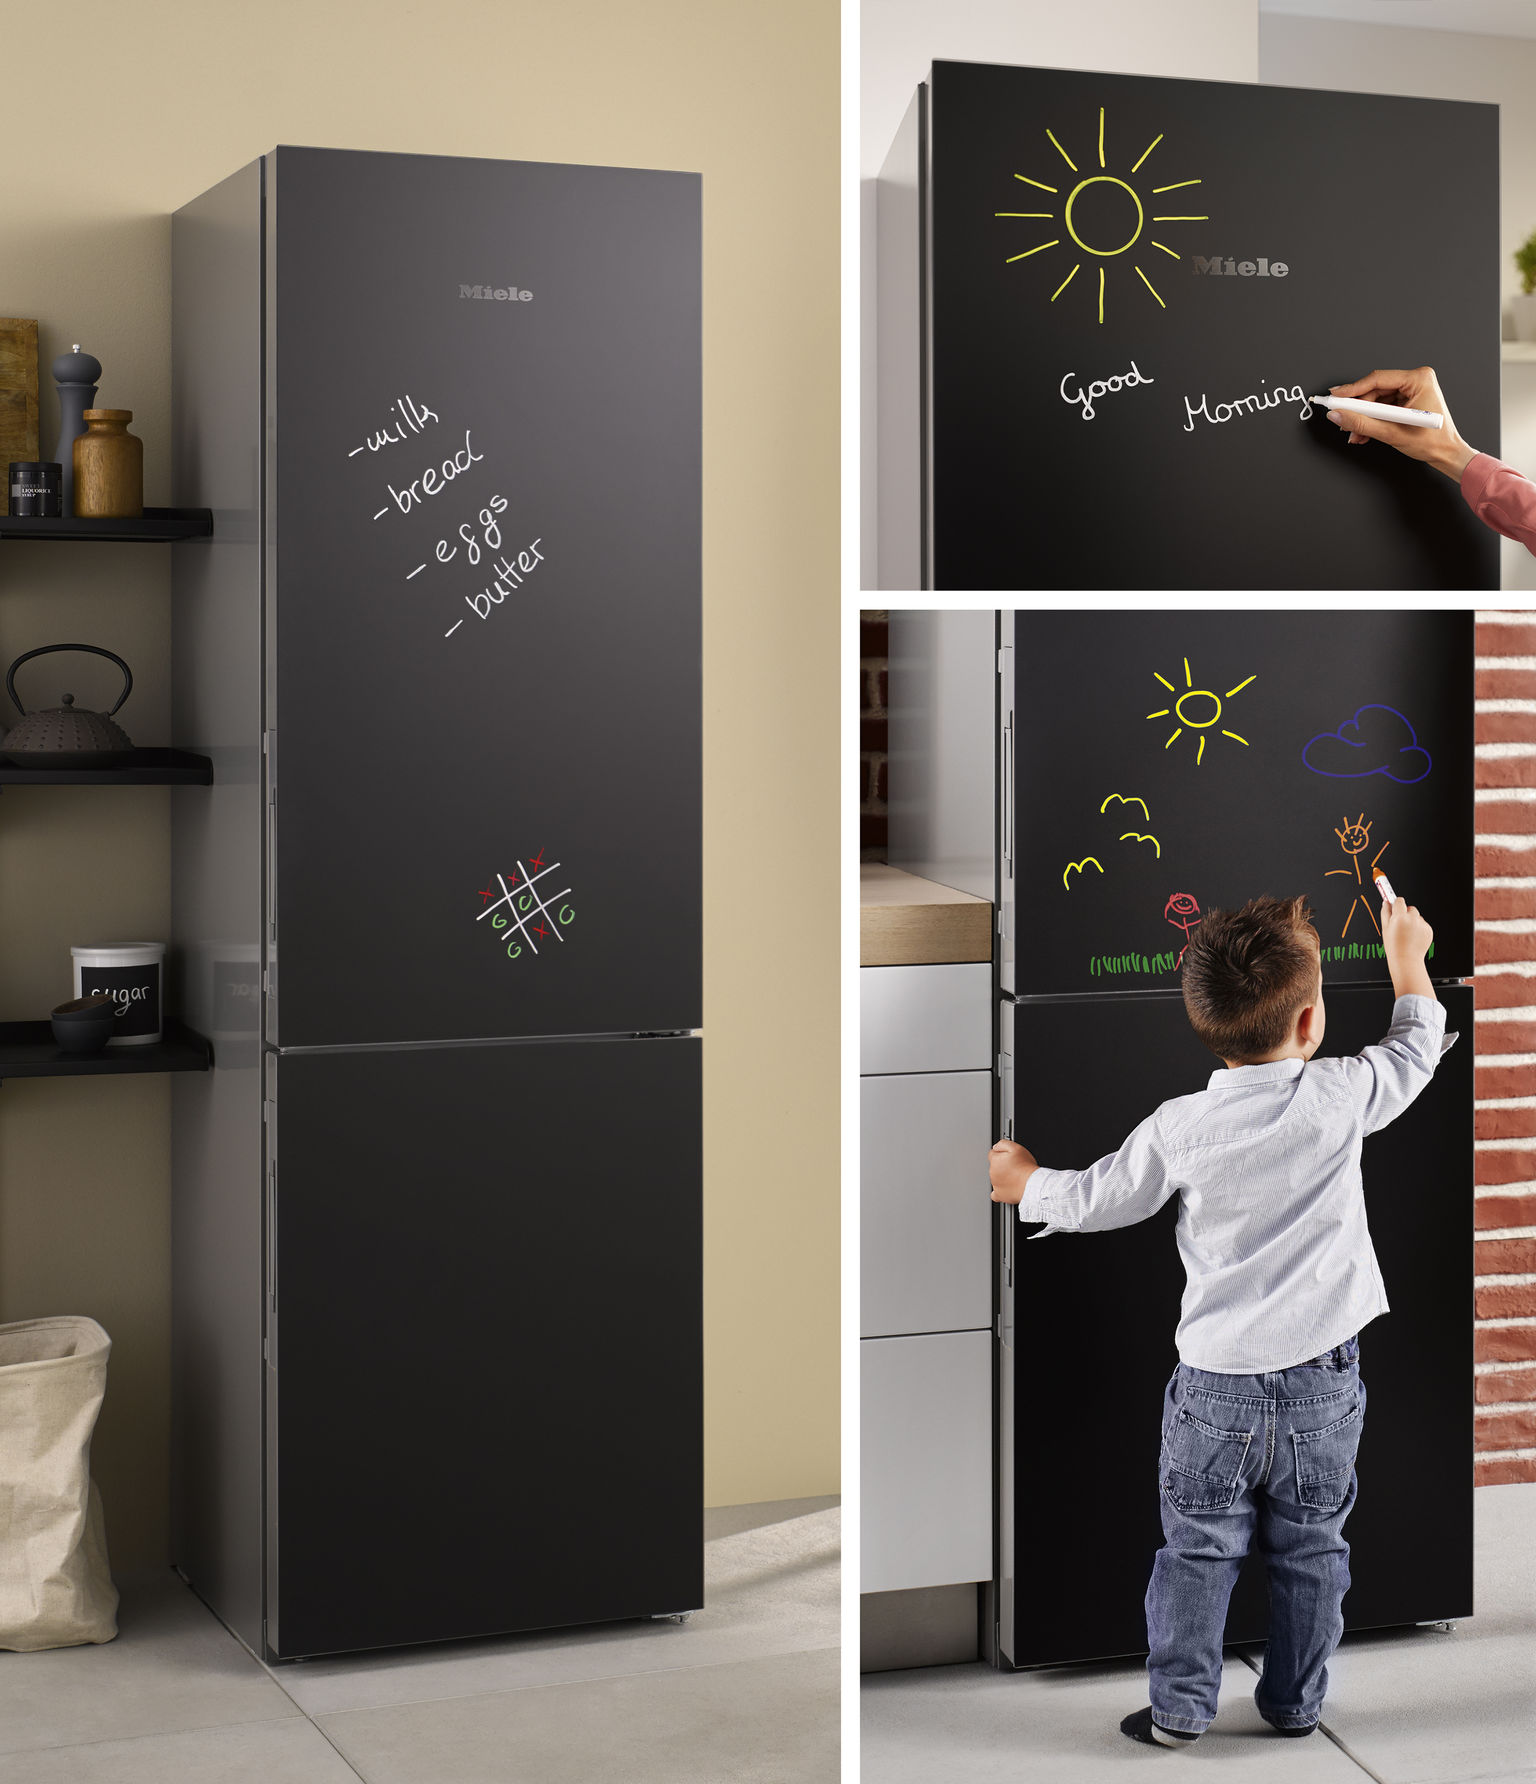 117 years in the making miele launch new blackboard fridge d i d electrical d i d electrical. Black Bedroom Furniture Sets. Home Design Ideas